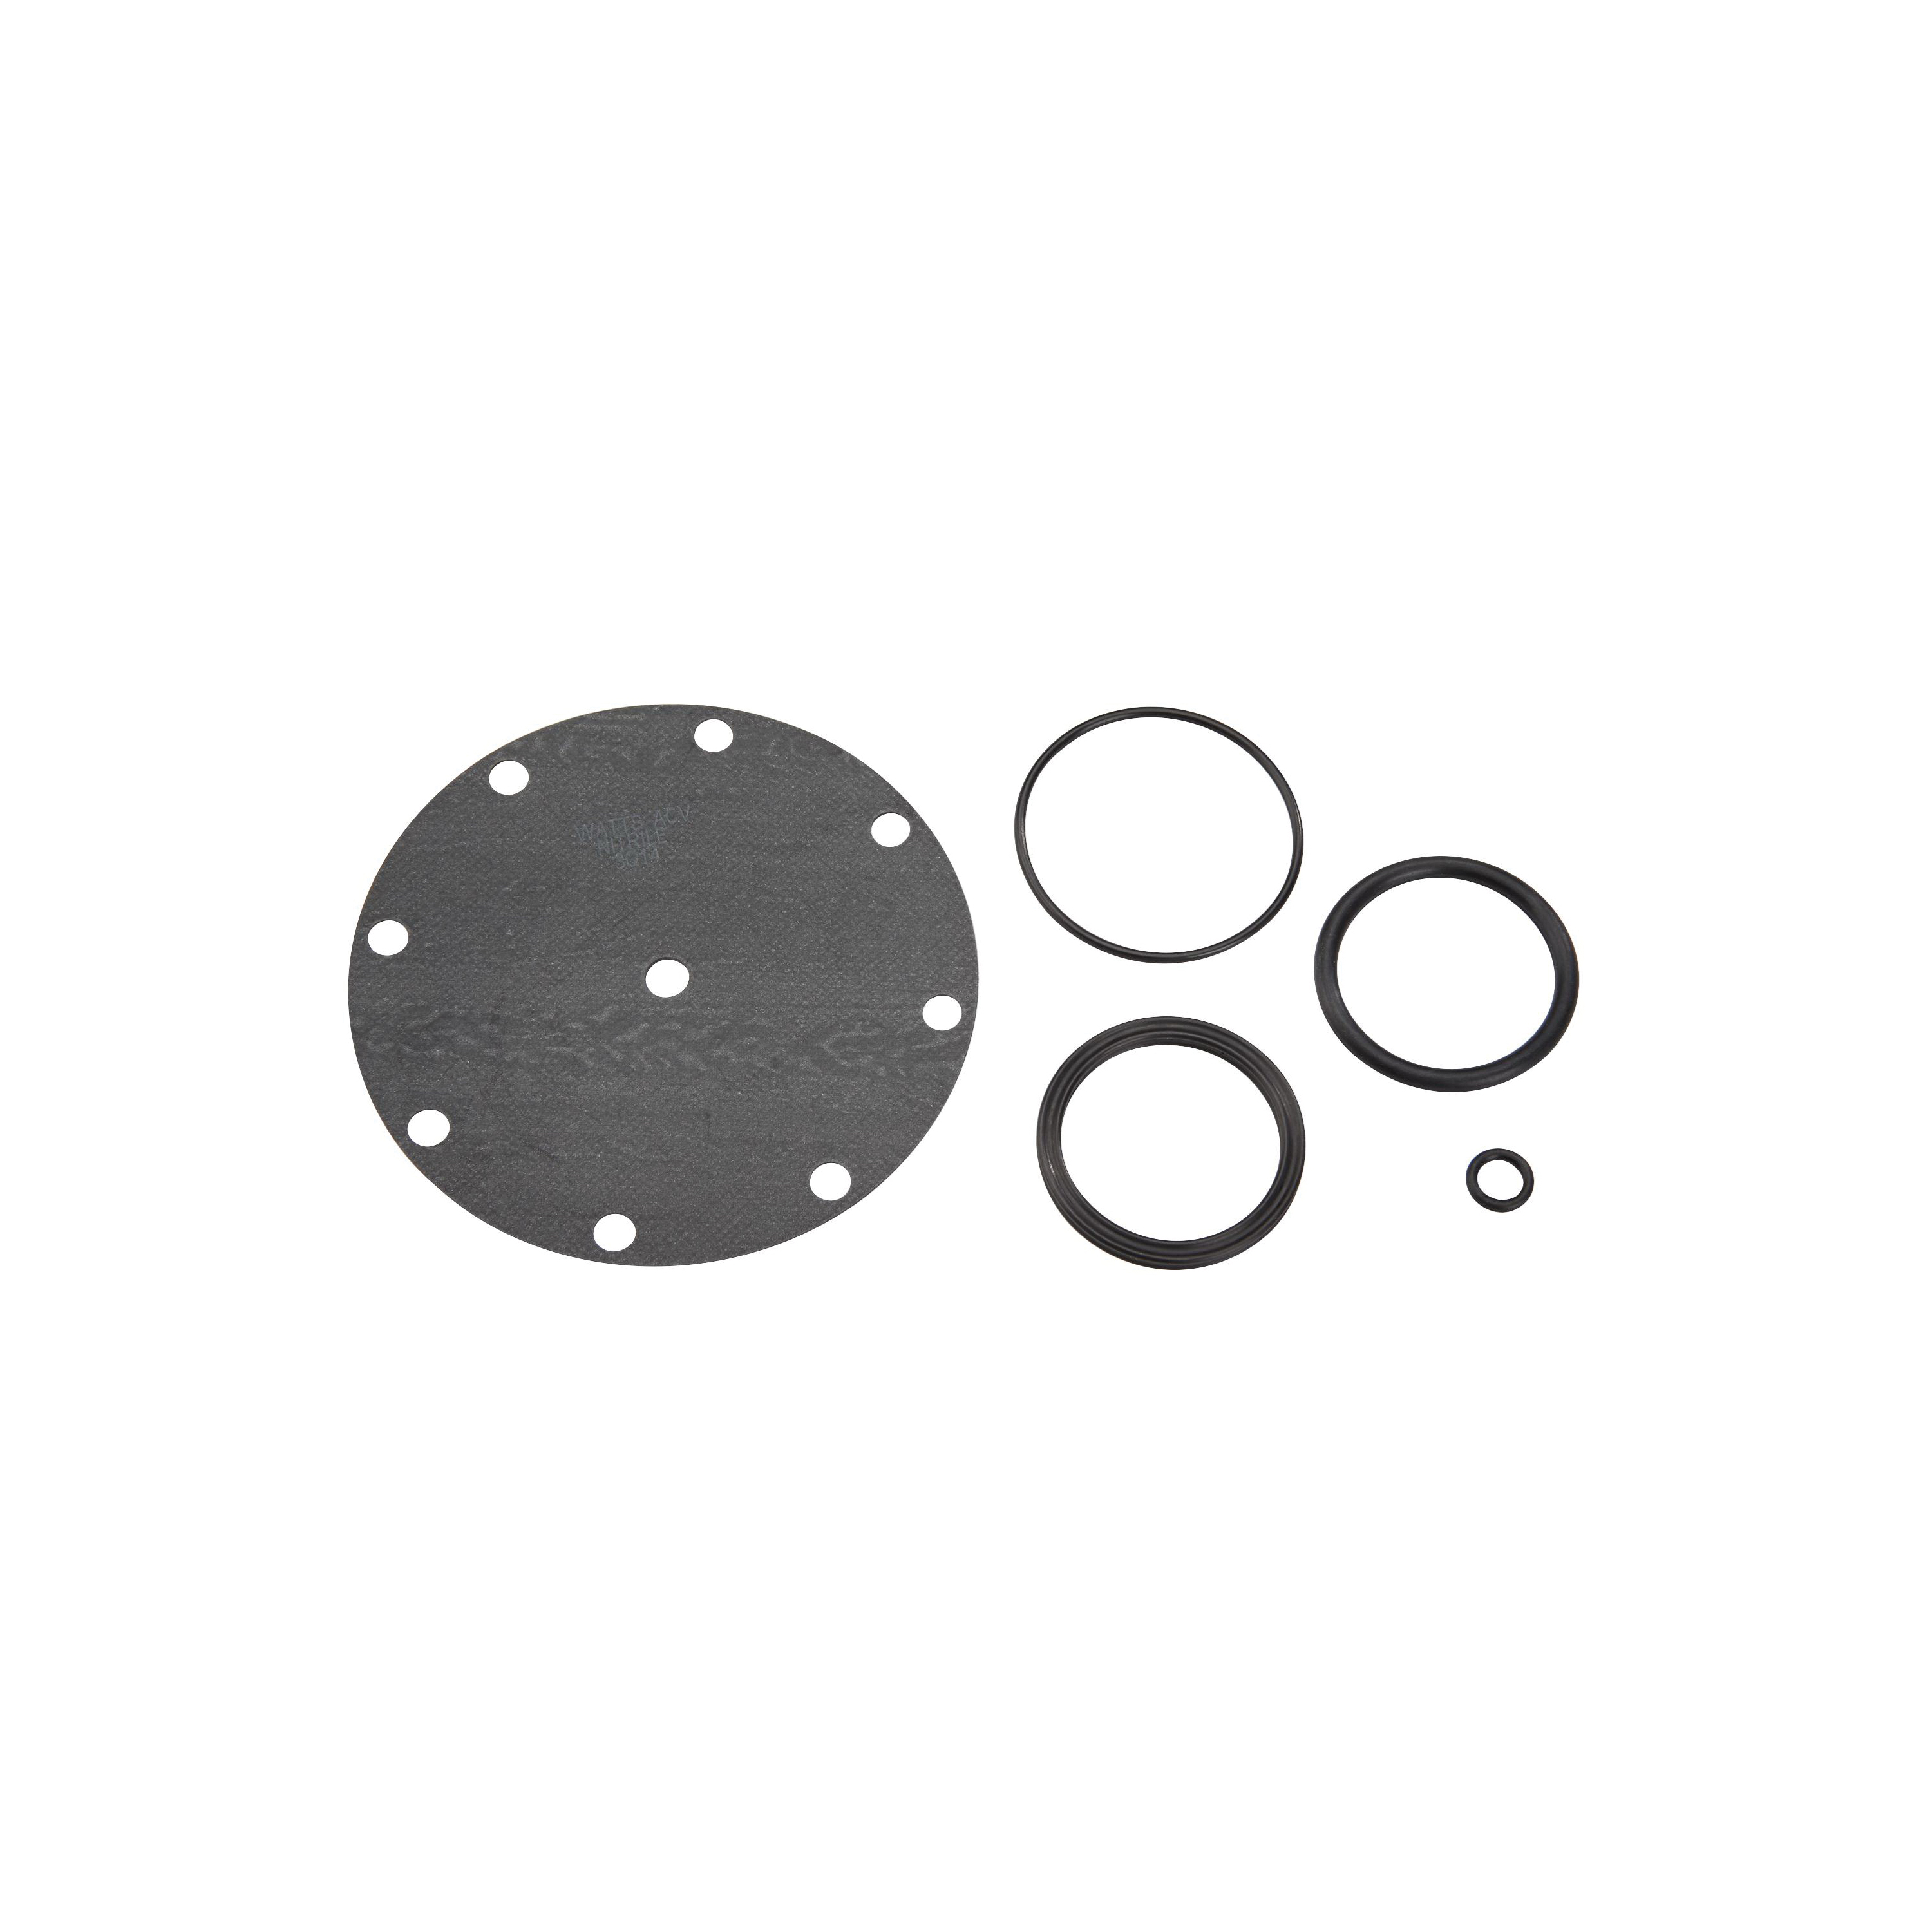 WATTS® 5346-01 MVRK F100 Repair Kit, For Use With F100 and F1100 Classics 2 in Valve